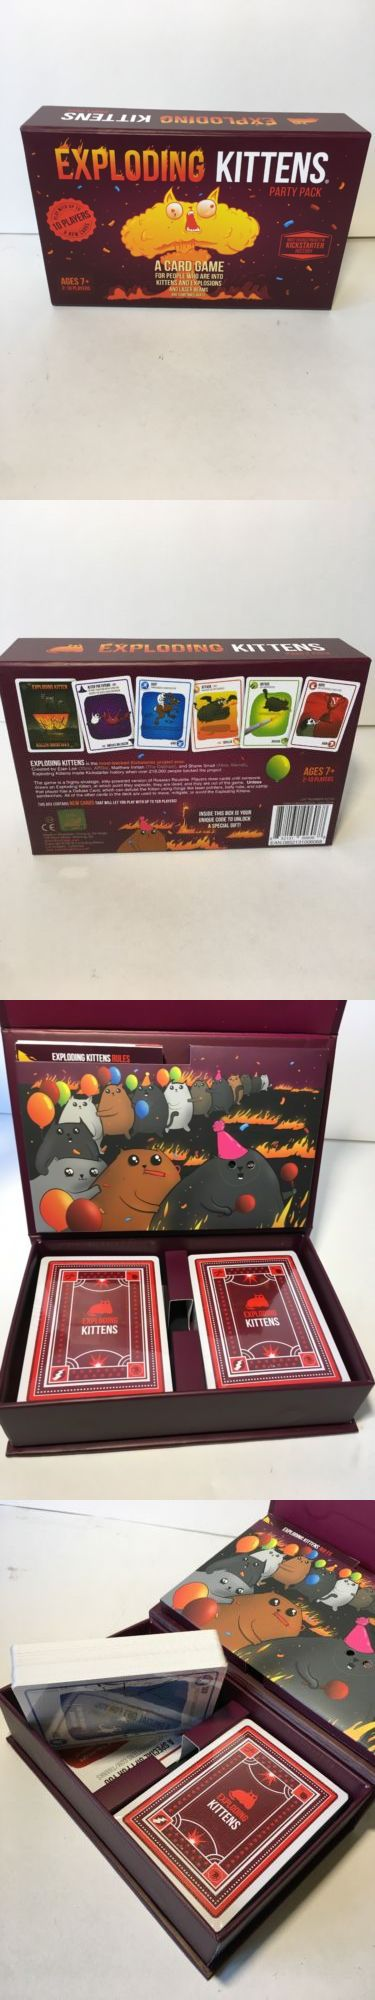 Card Games Contemporary 19082 New Exploding Kittens Party Pack Target Exclusive Rare 10 Player Upgrade Open Buy It N Kitten Party Card Games Party Packs